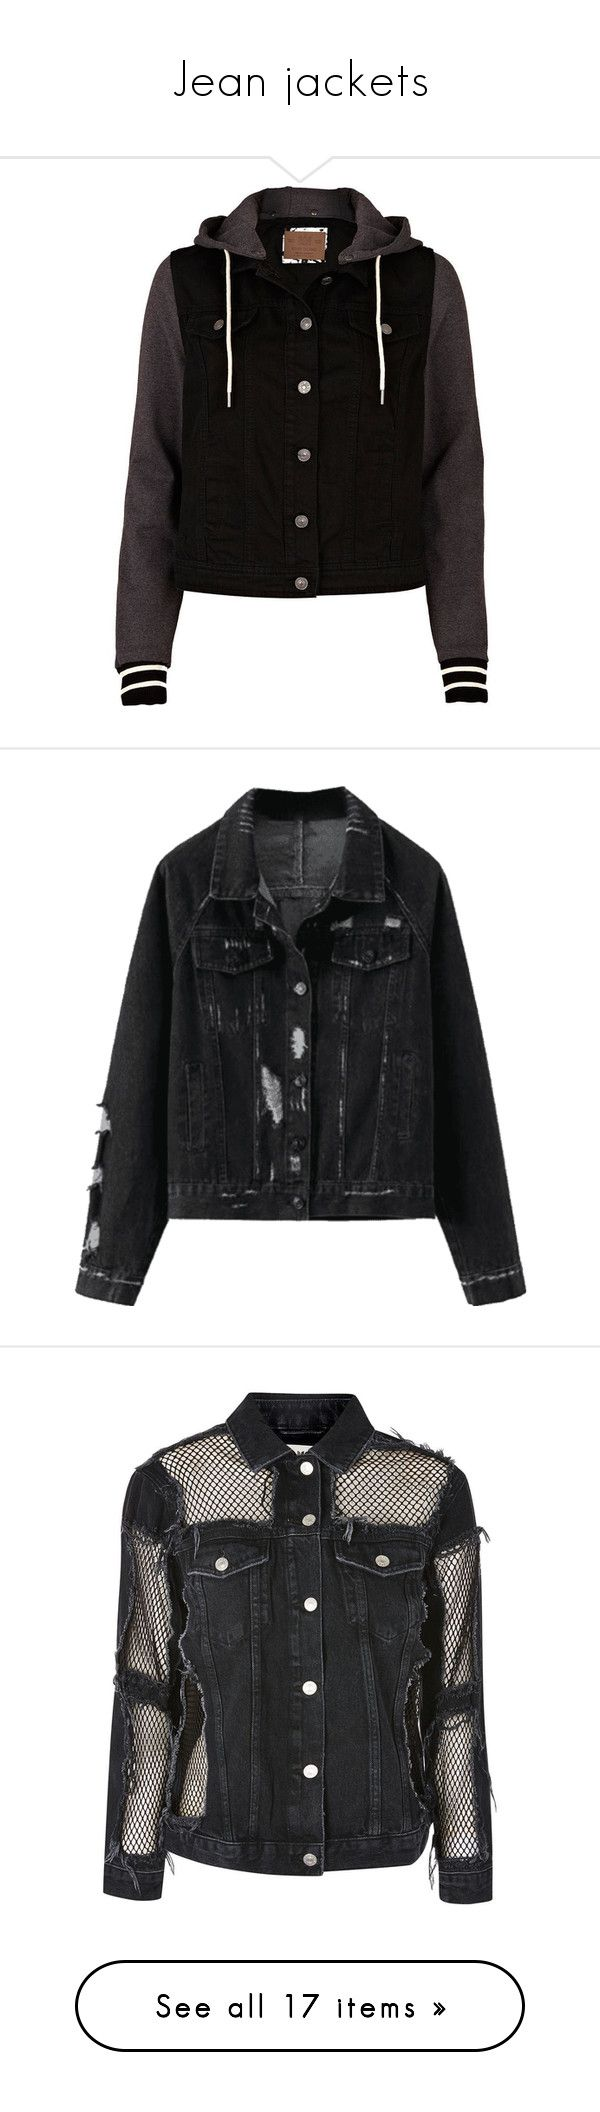 """""""Jean jackets"""" by haileyscomet95 ❤ liked on Polyvore featuring outerwear, jackets, tops, casacos, sale, sleeve jacket, jean jacket, sleeve jersey, grunge denim jacket and hooded denim jacket"""